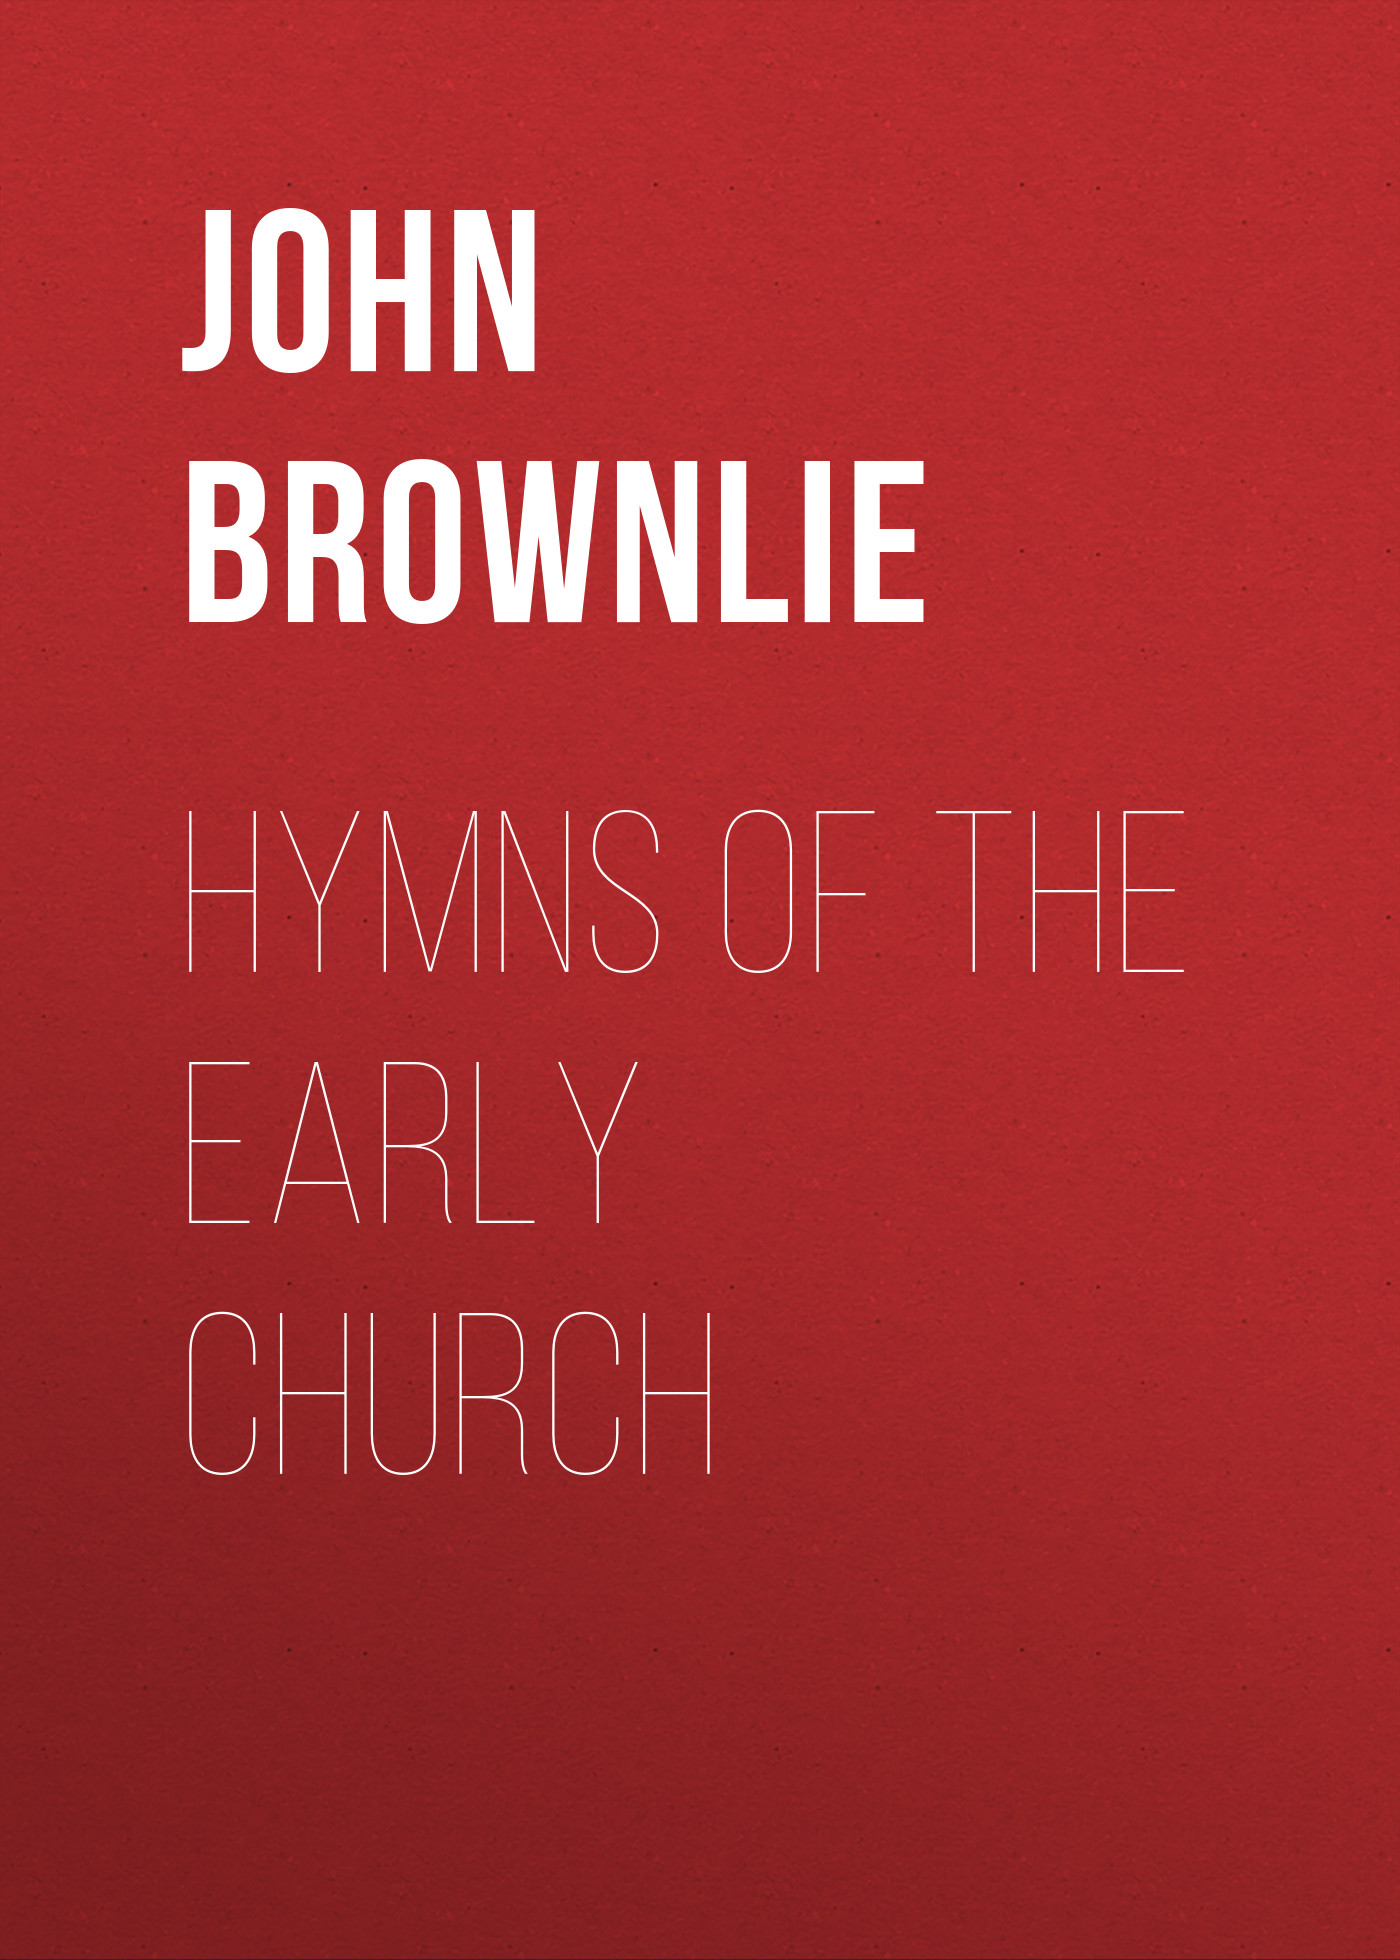 John Brownlie Hymns of the Early Church джон колтрейн john coltrane giant steps the best of the early years 10 cd